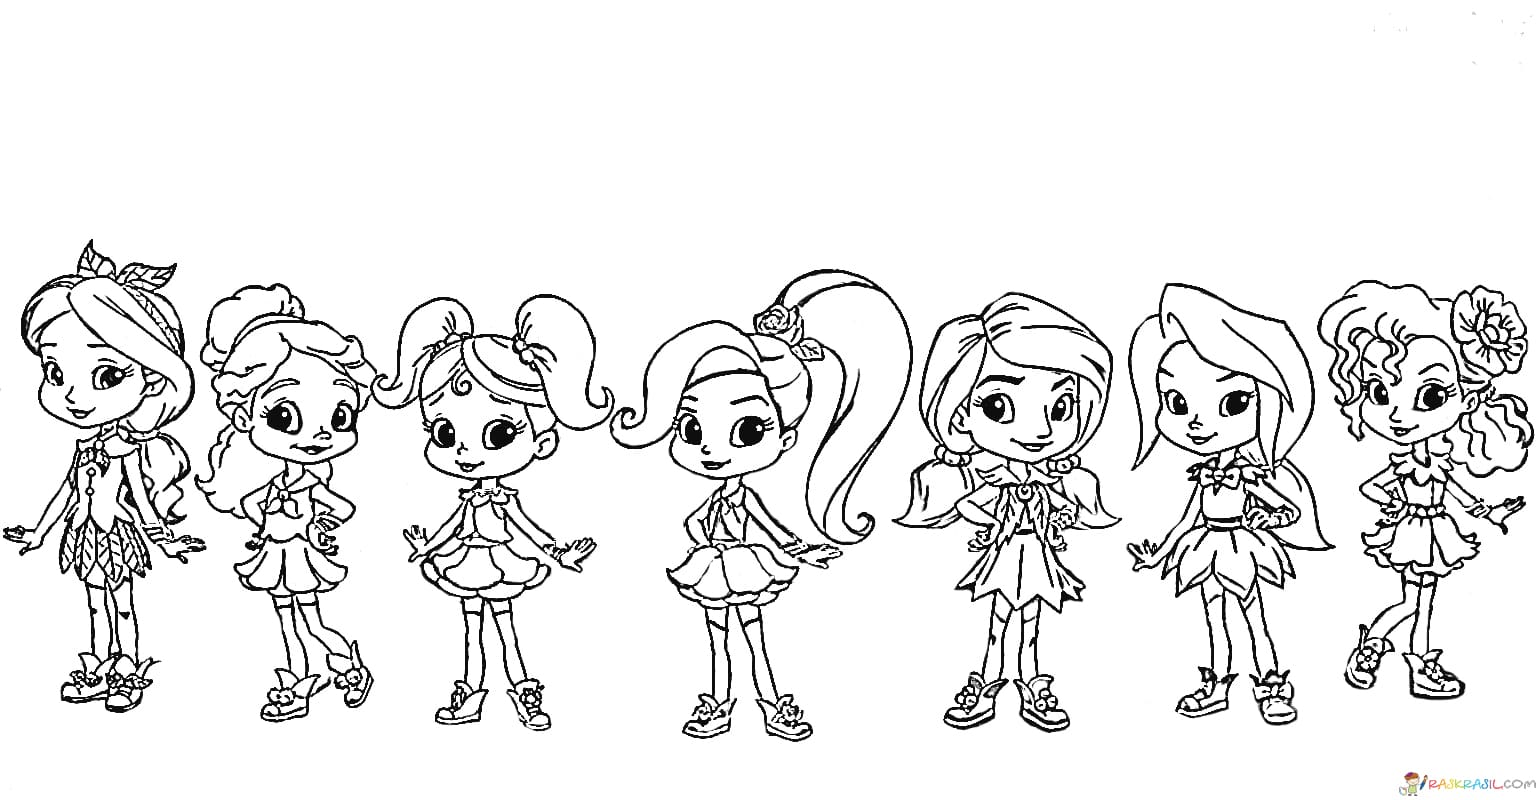 rainbow rangers coloring pages rainbow rangers coloring book coloring pages rainbow rangers